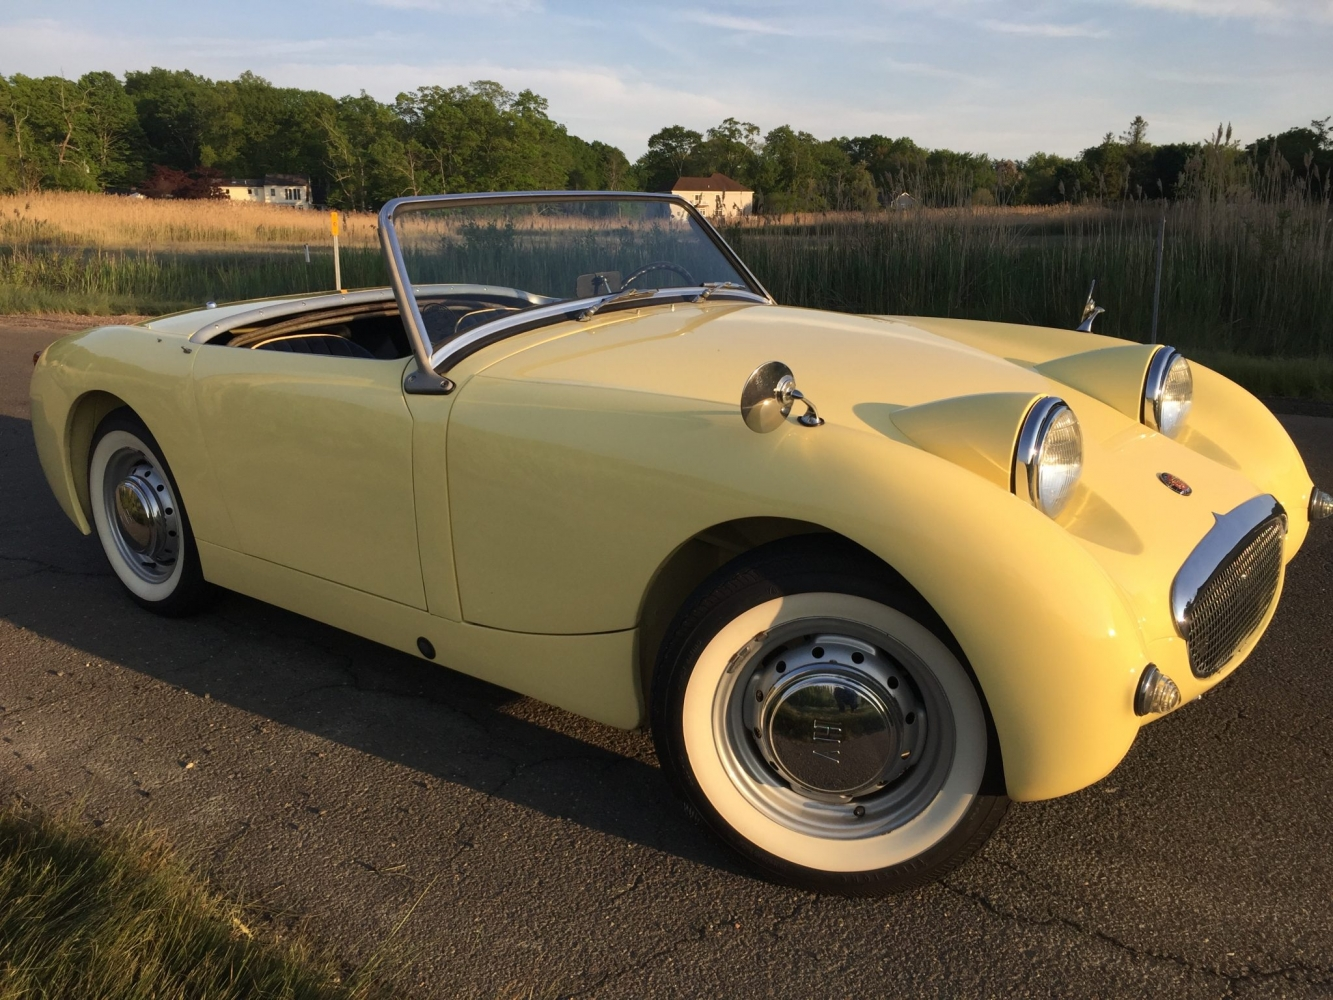 Fully restored primrose 1960 Bugeye, 948 engine upgraded front disc brakes fully restored and ready to roll!